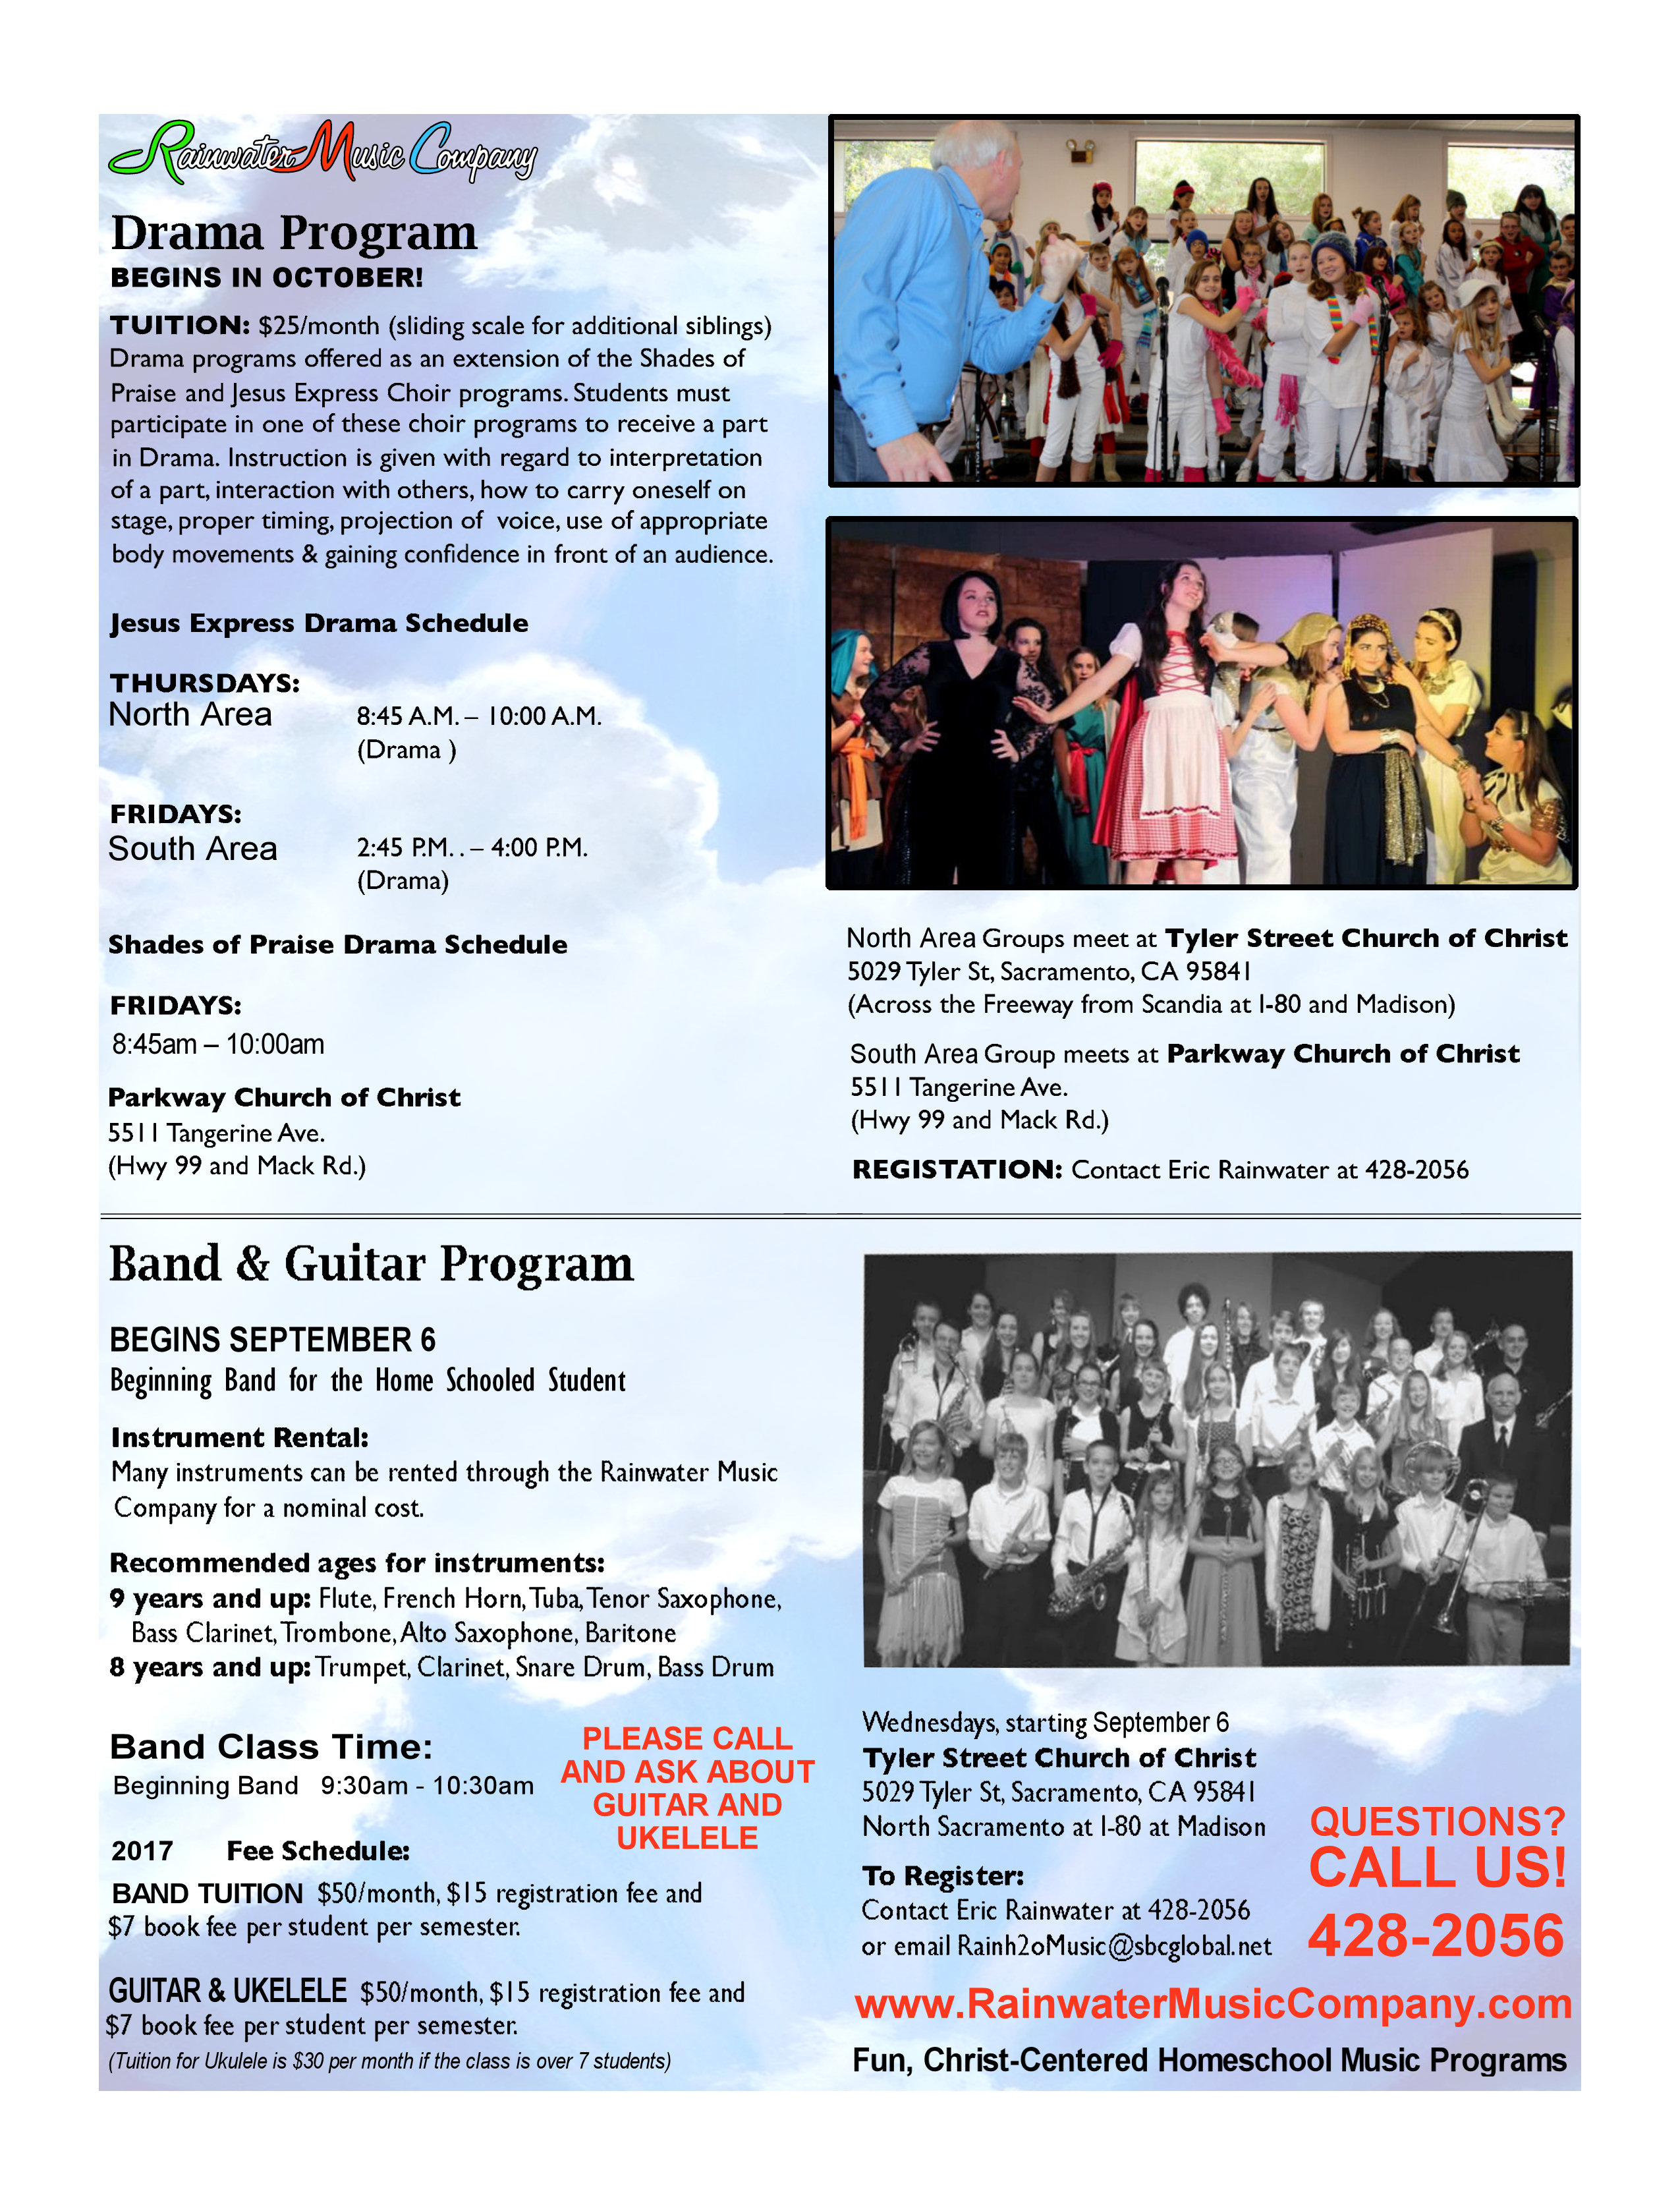 Rainwater Homeschool Music Programs: BAND & GUITAR PROGRAM